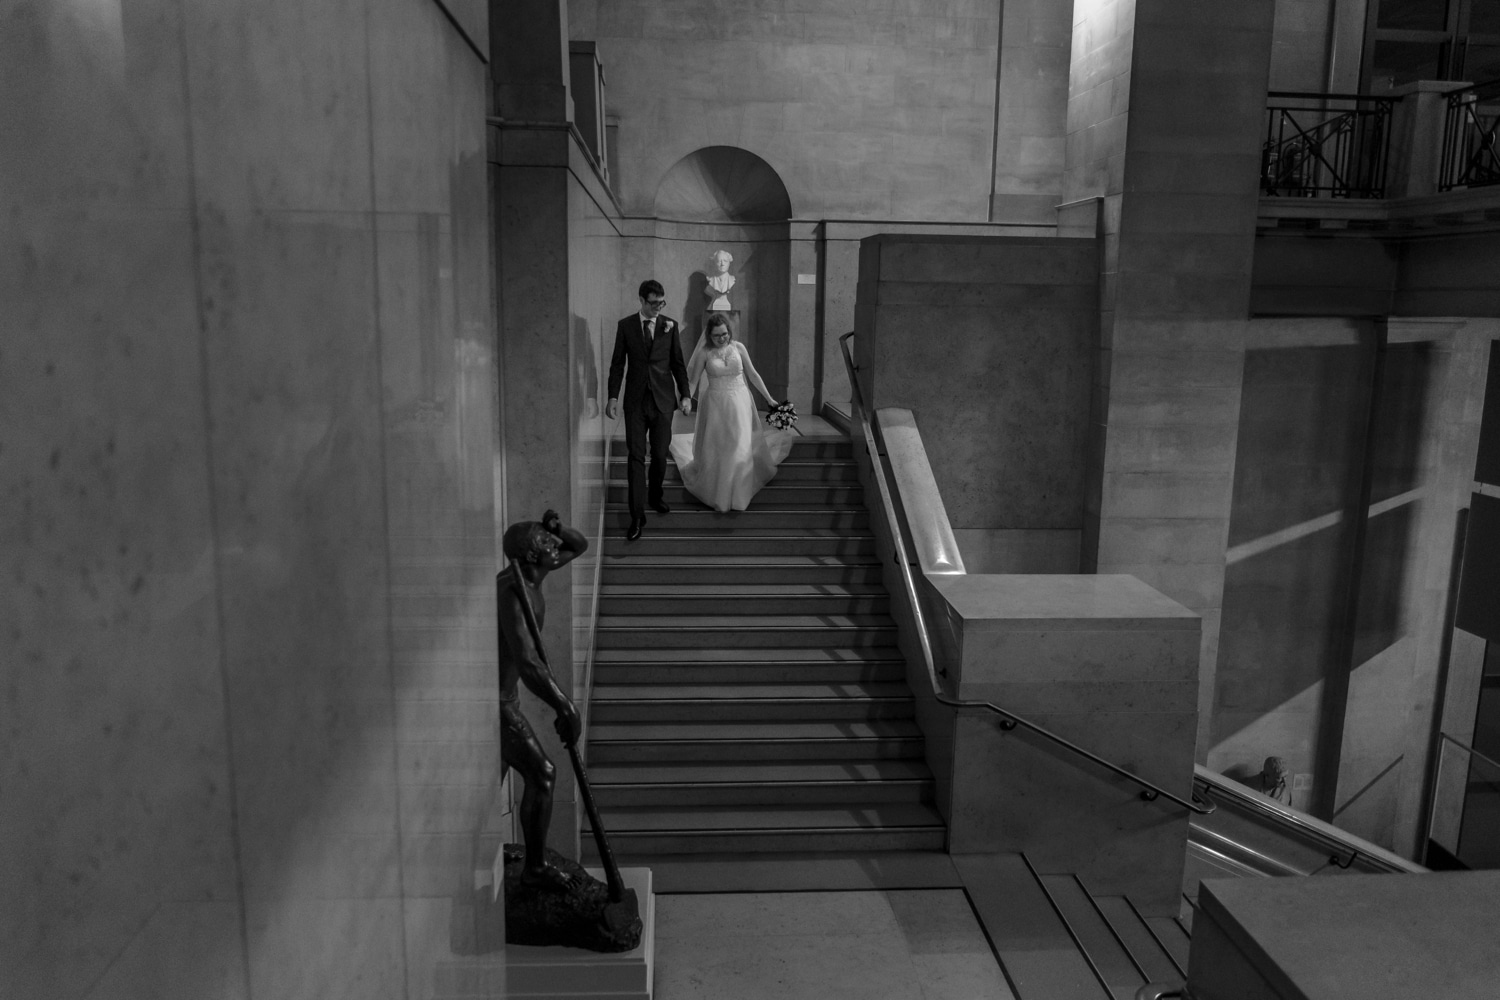 Bride and groom on stairs at Cardiff Museum wedding